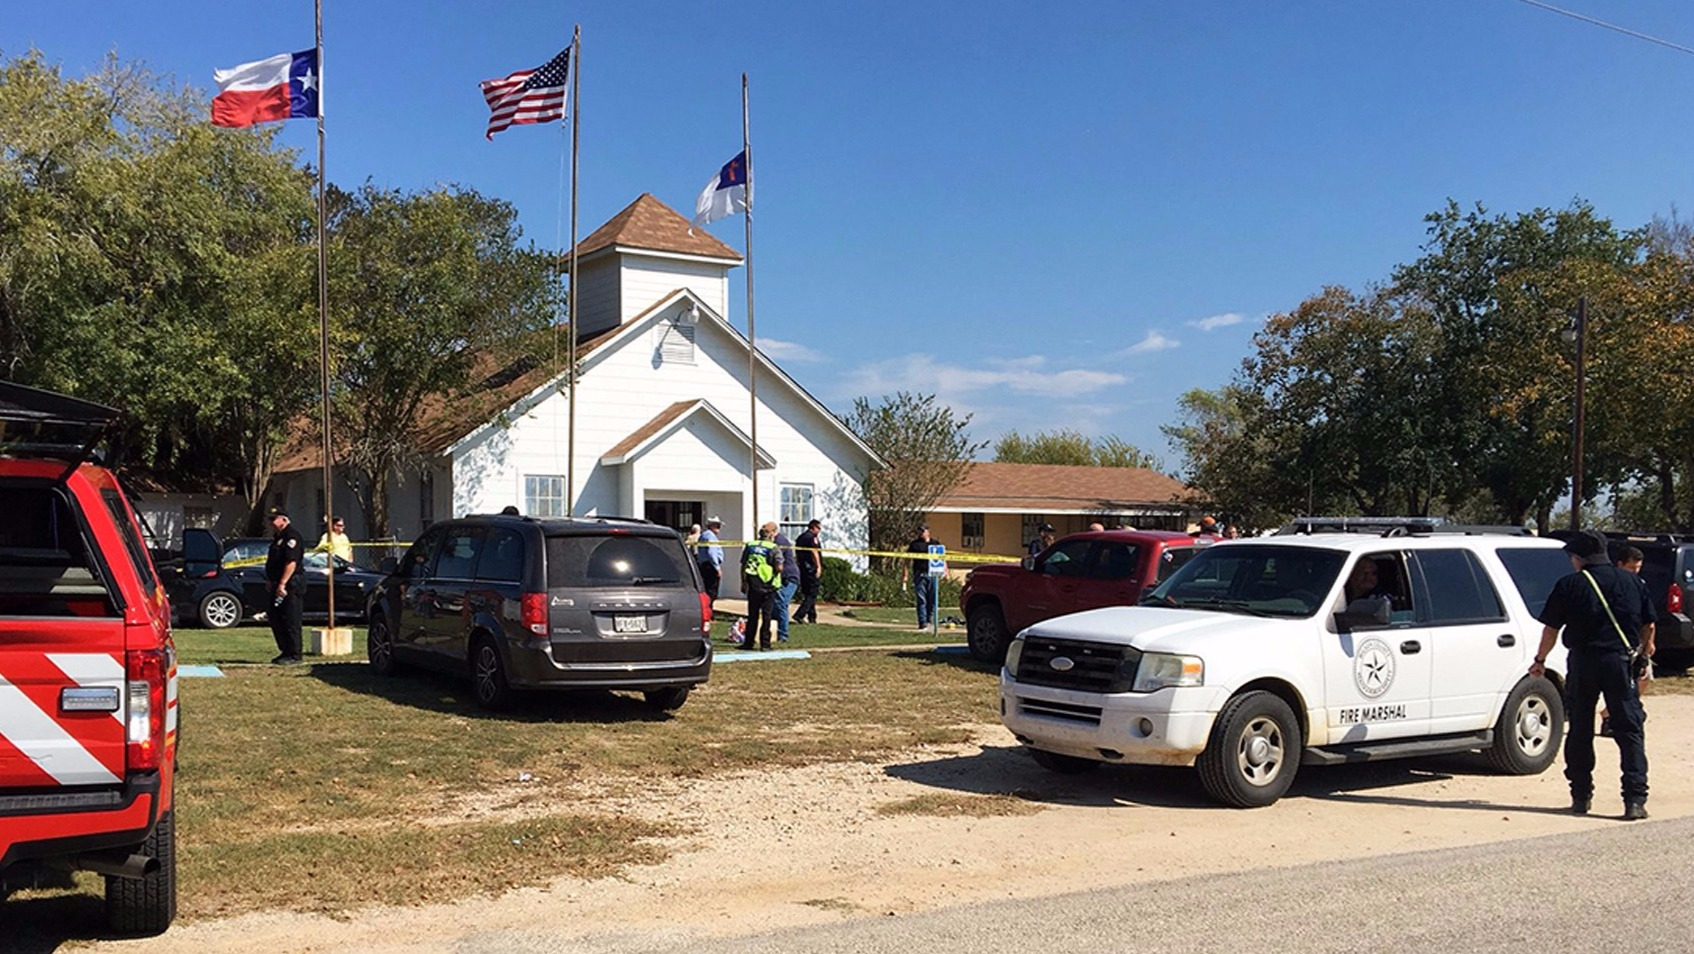 Multiple Deaths in Shooting At Texas Church, Sheriff Says